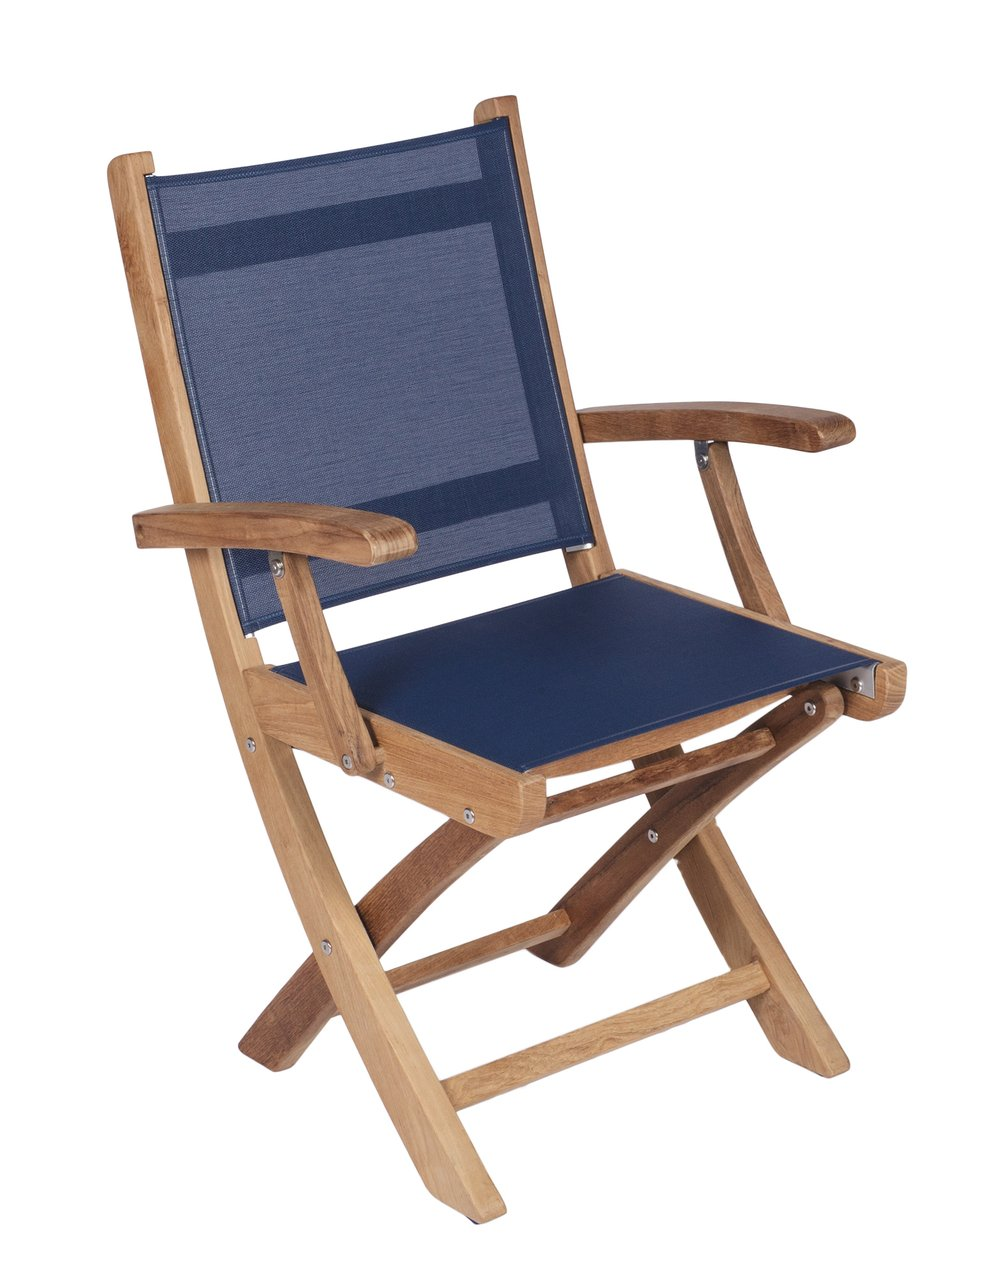 ROYAL TEAK - Sailmate Folding Arm Chair    Sling Colors : Navy, Moss, Grey, Black & White